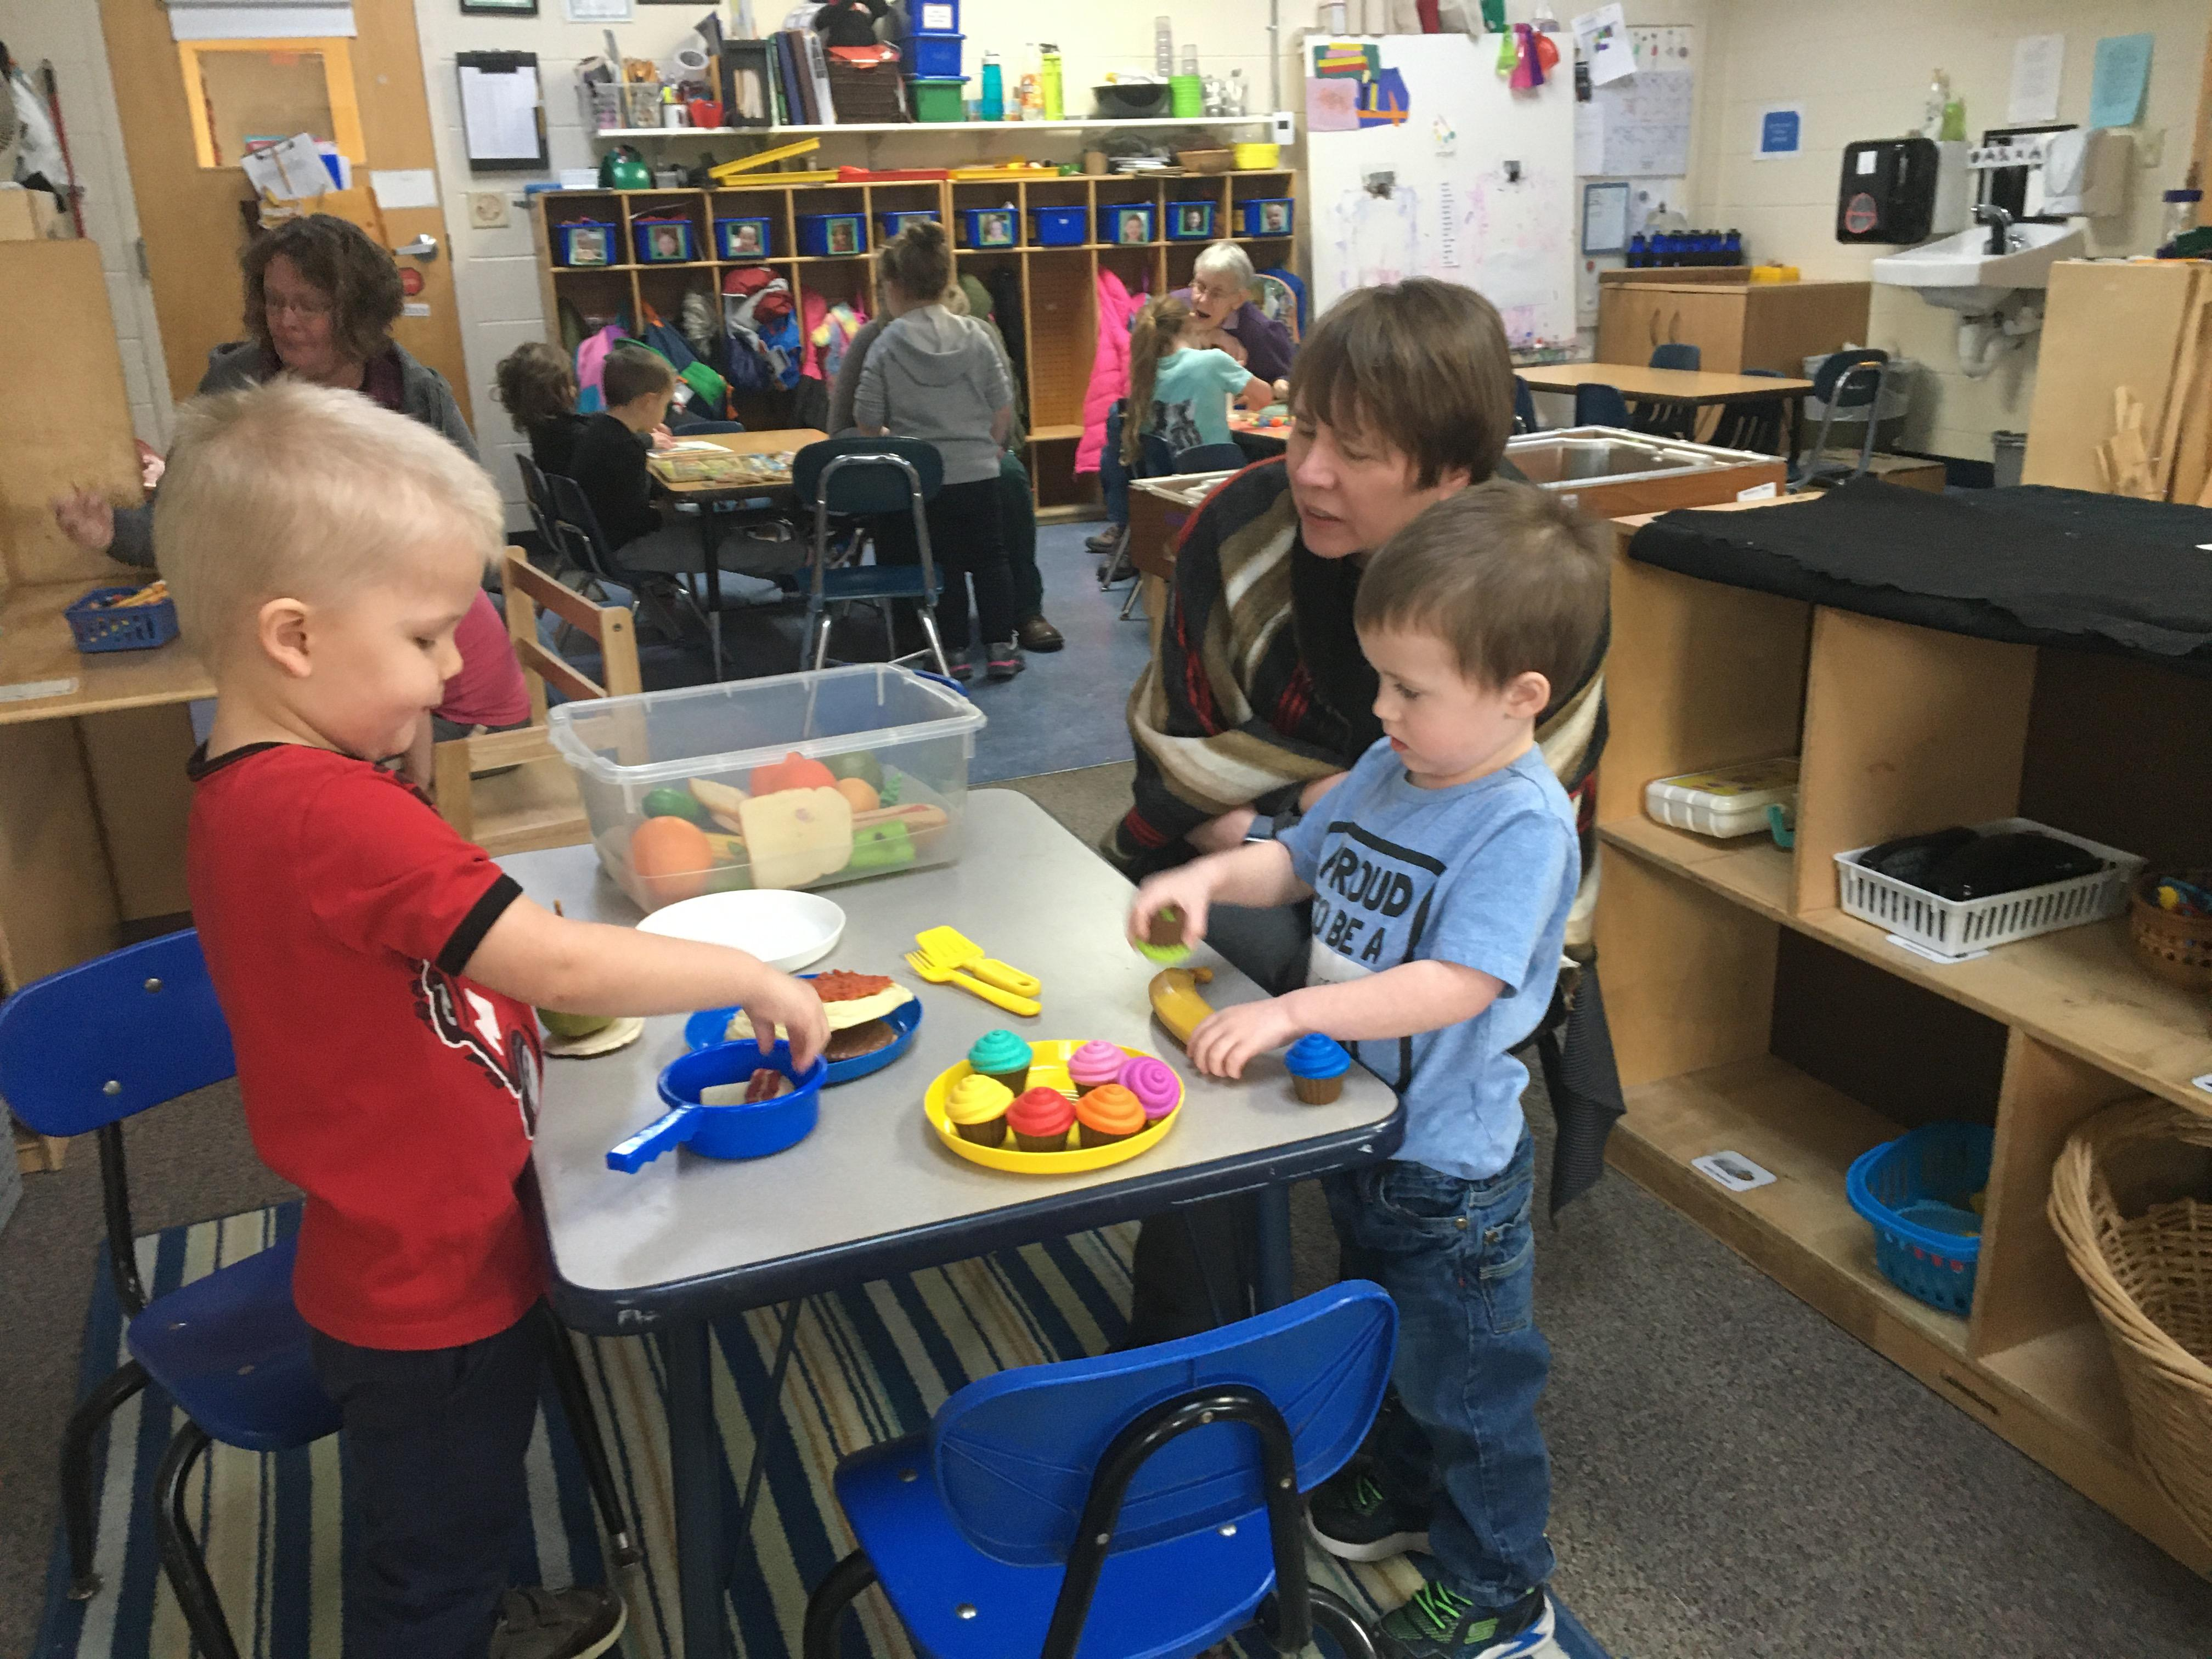 Pre-K students exploring and having fun